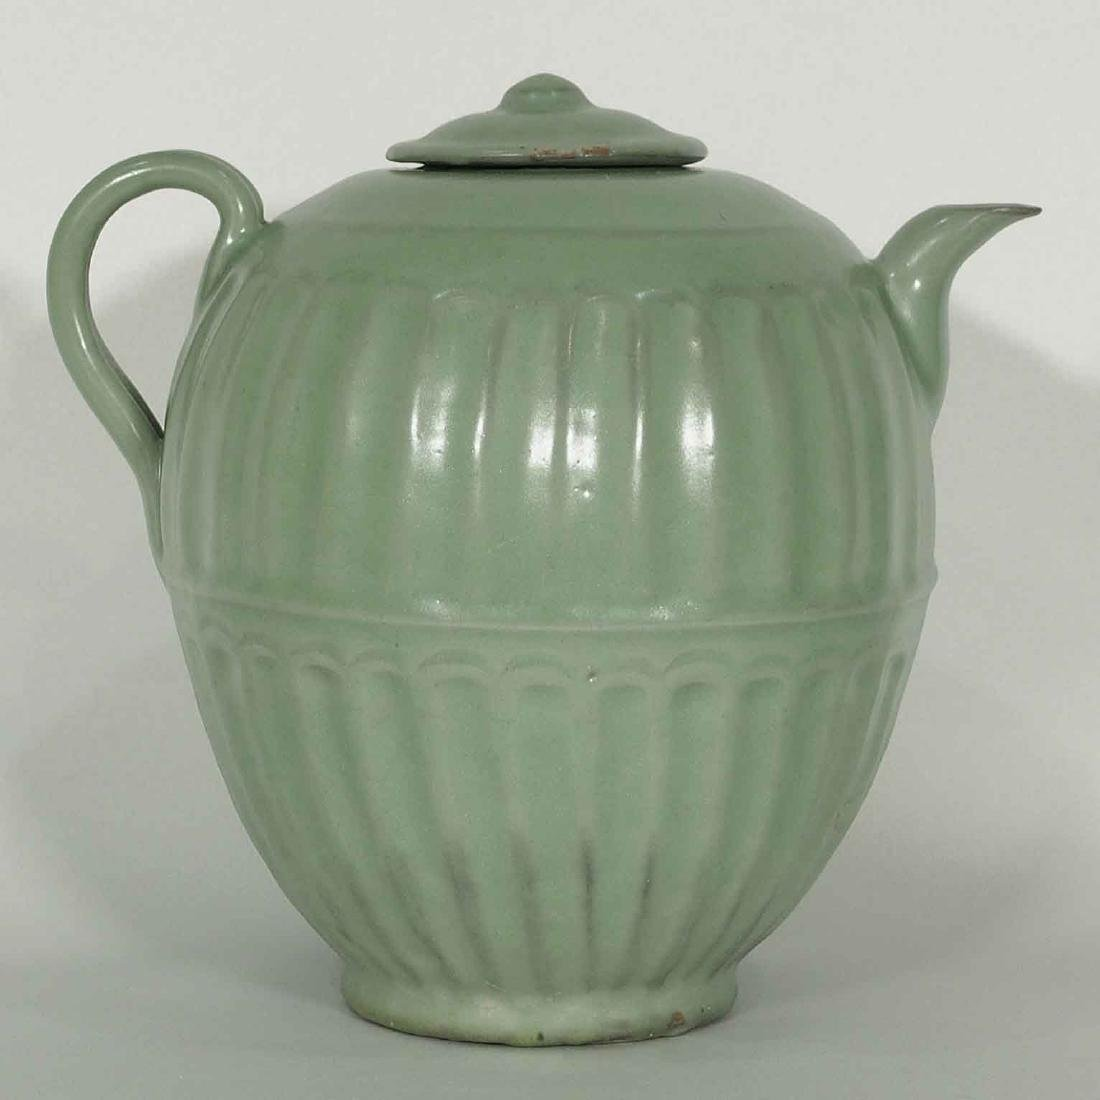 Longquan Fluted Ewer with Lid, late Southern Song